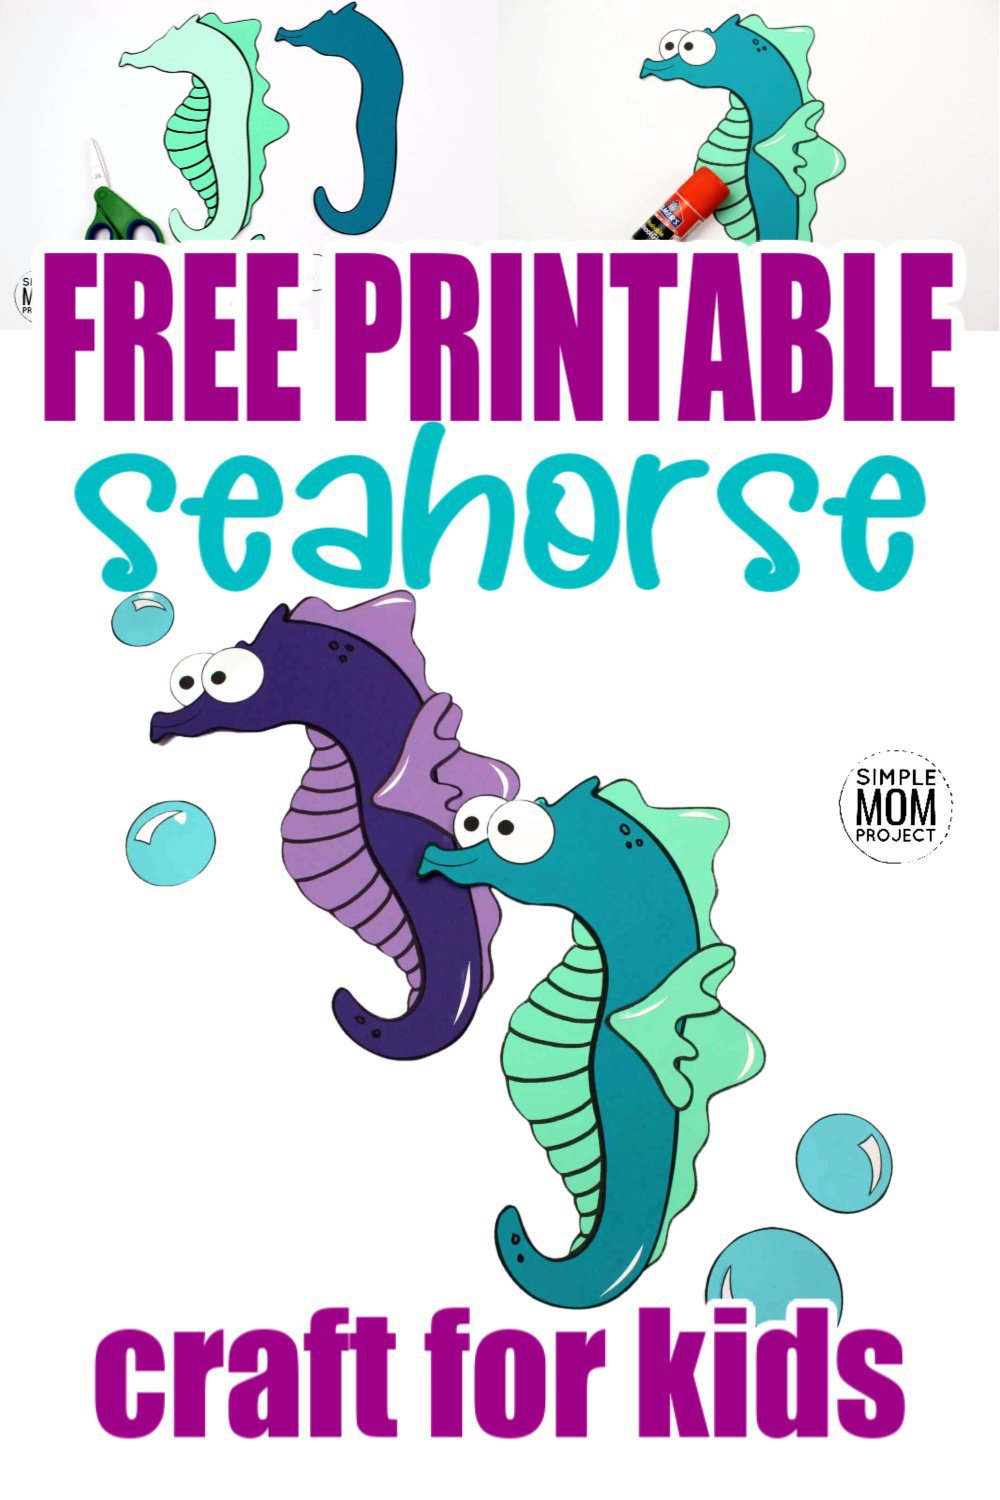 Looking for your next ocean theme preschool craft? Use our free printable seahorse template to make this fun ocean themed arts and craft project. You can even name him Mister Seahorse if you would like! This sea creature is especially fun to make with toddlers and kindergarten age kids too! #seahorse #seahorsecrafts #oceananimals #oceananimalcrafts #SimpleMomProject